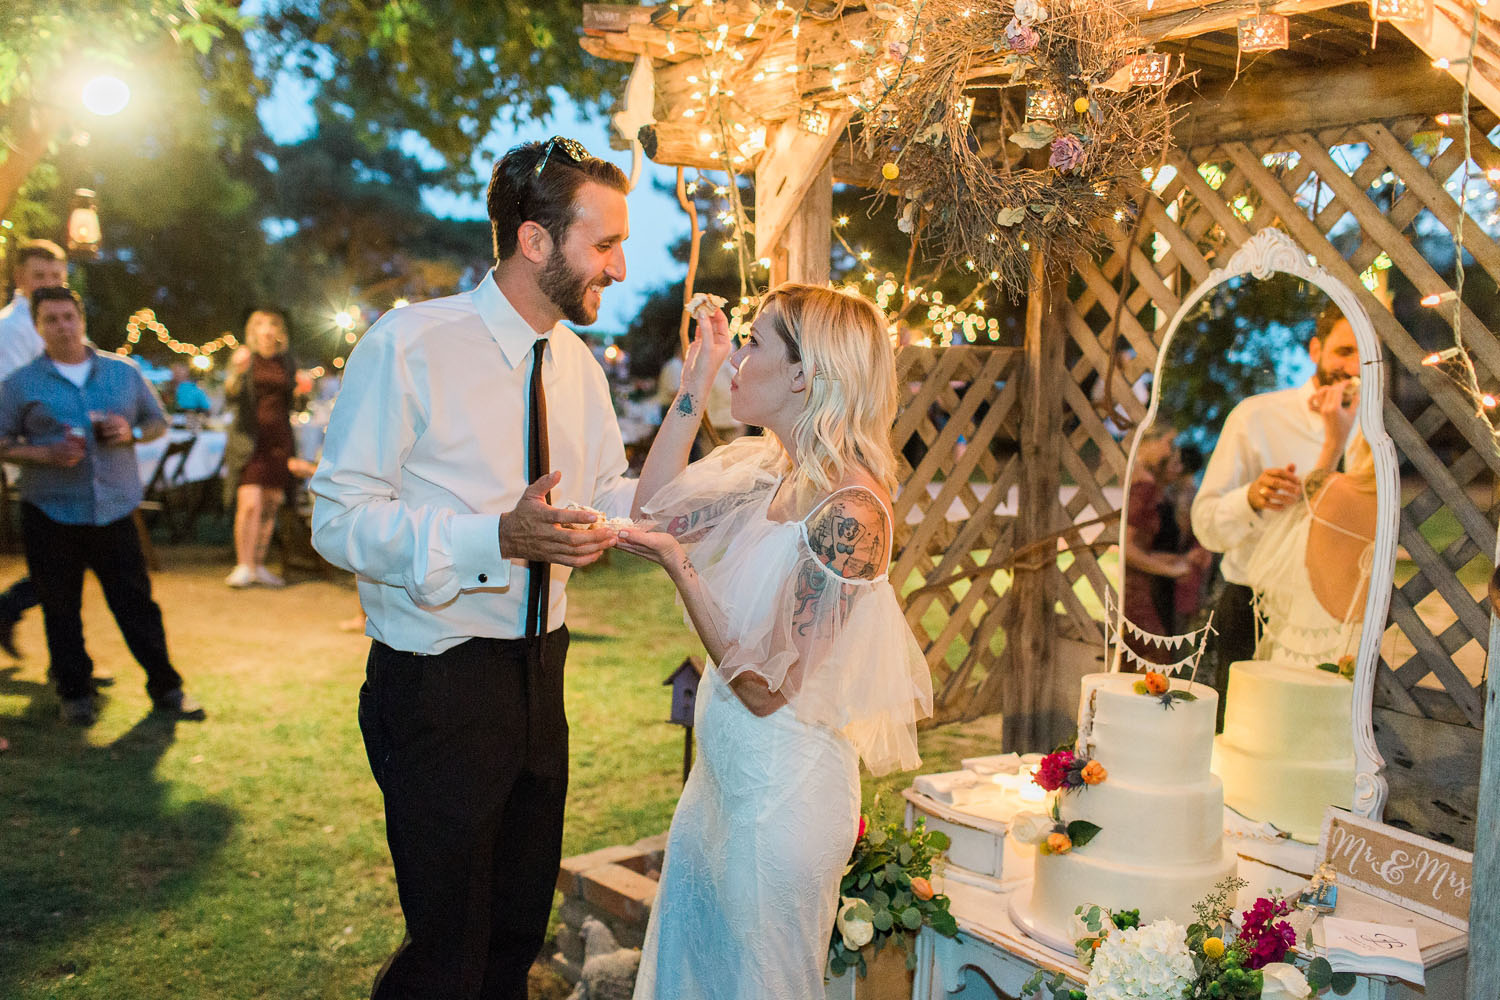 The Photege - Elegant Boho Wedding on Suburu Farm in Bakersfield California- Cassie and Darin Buoni-3077